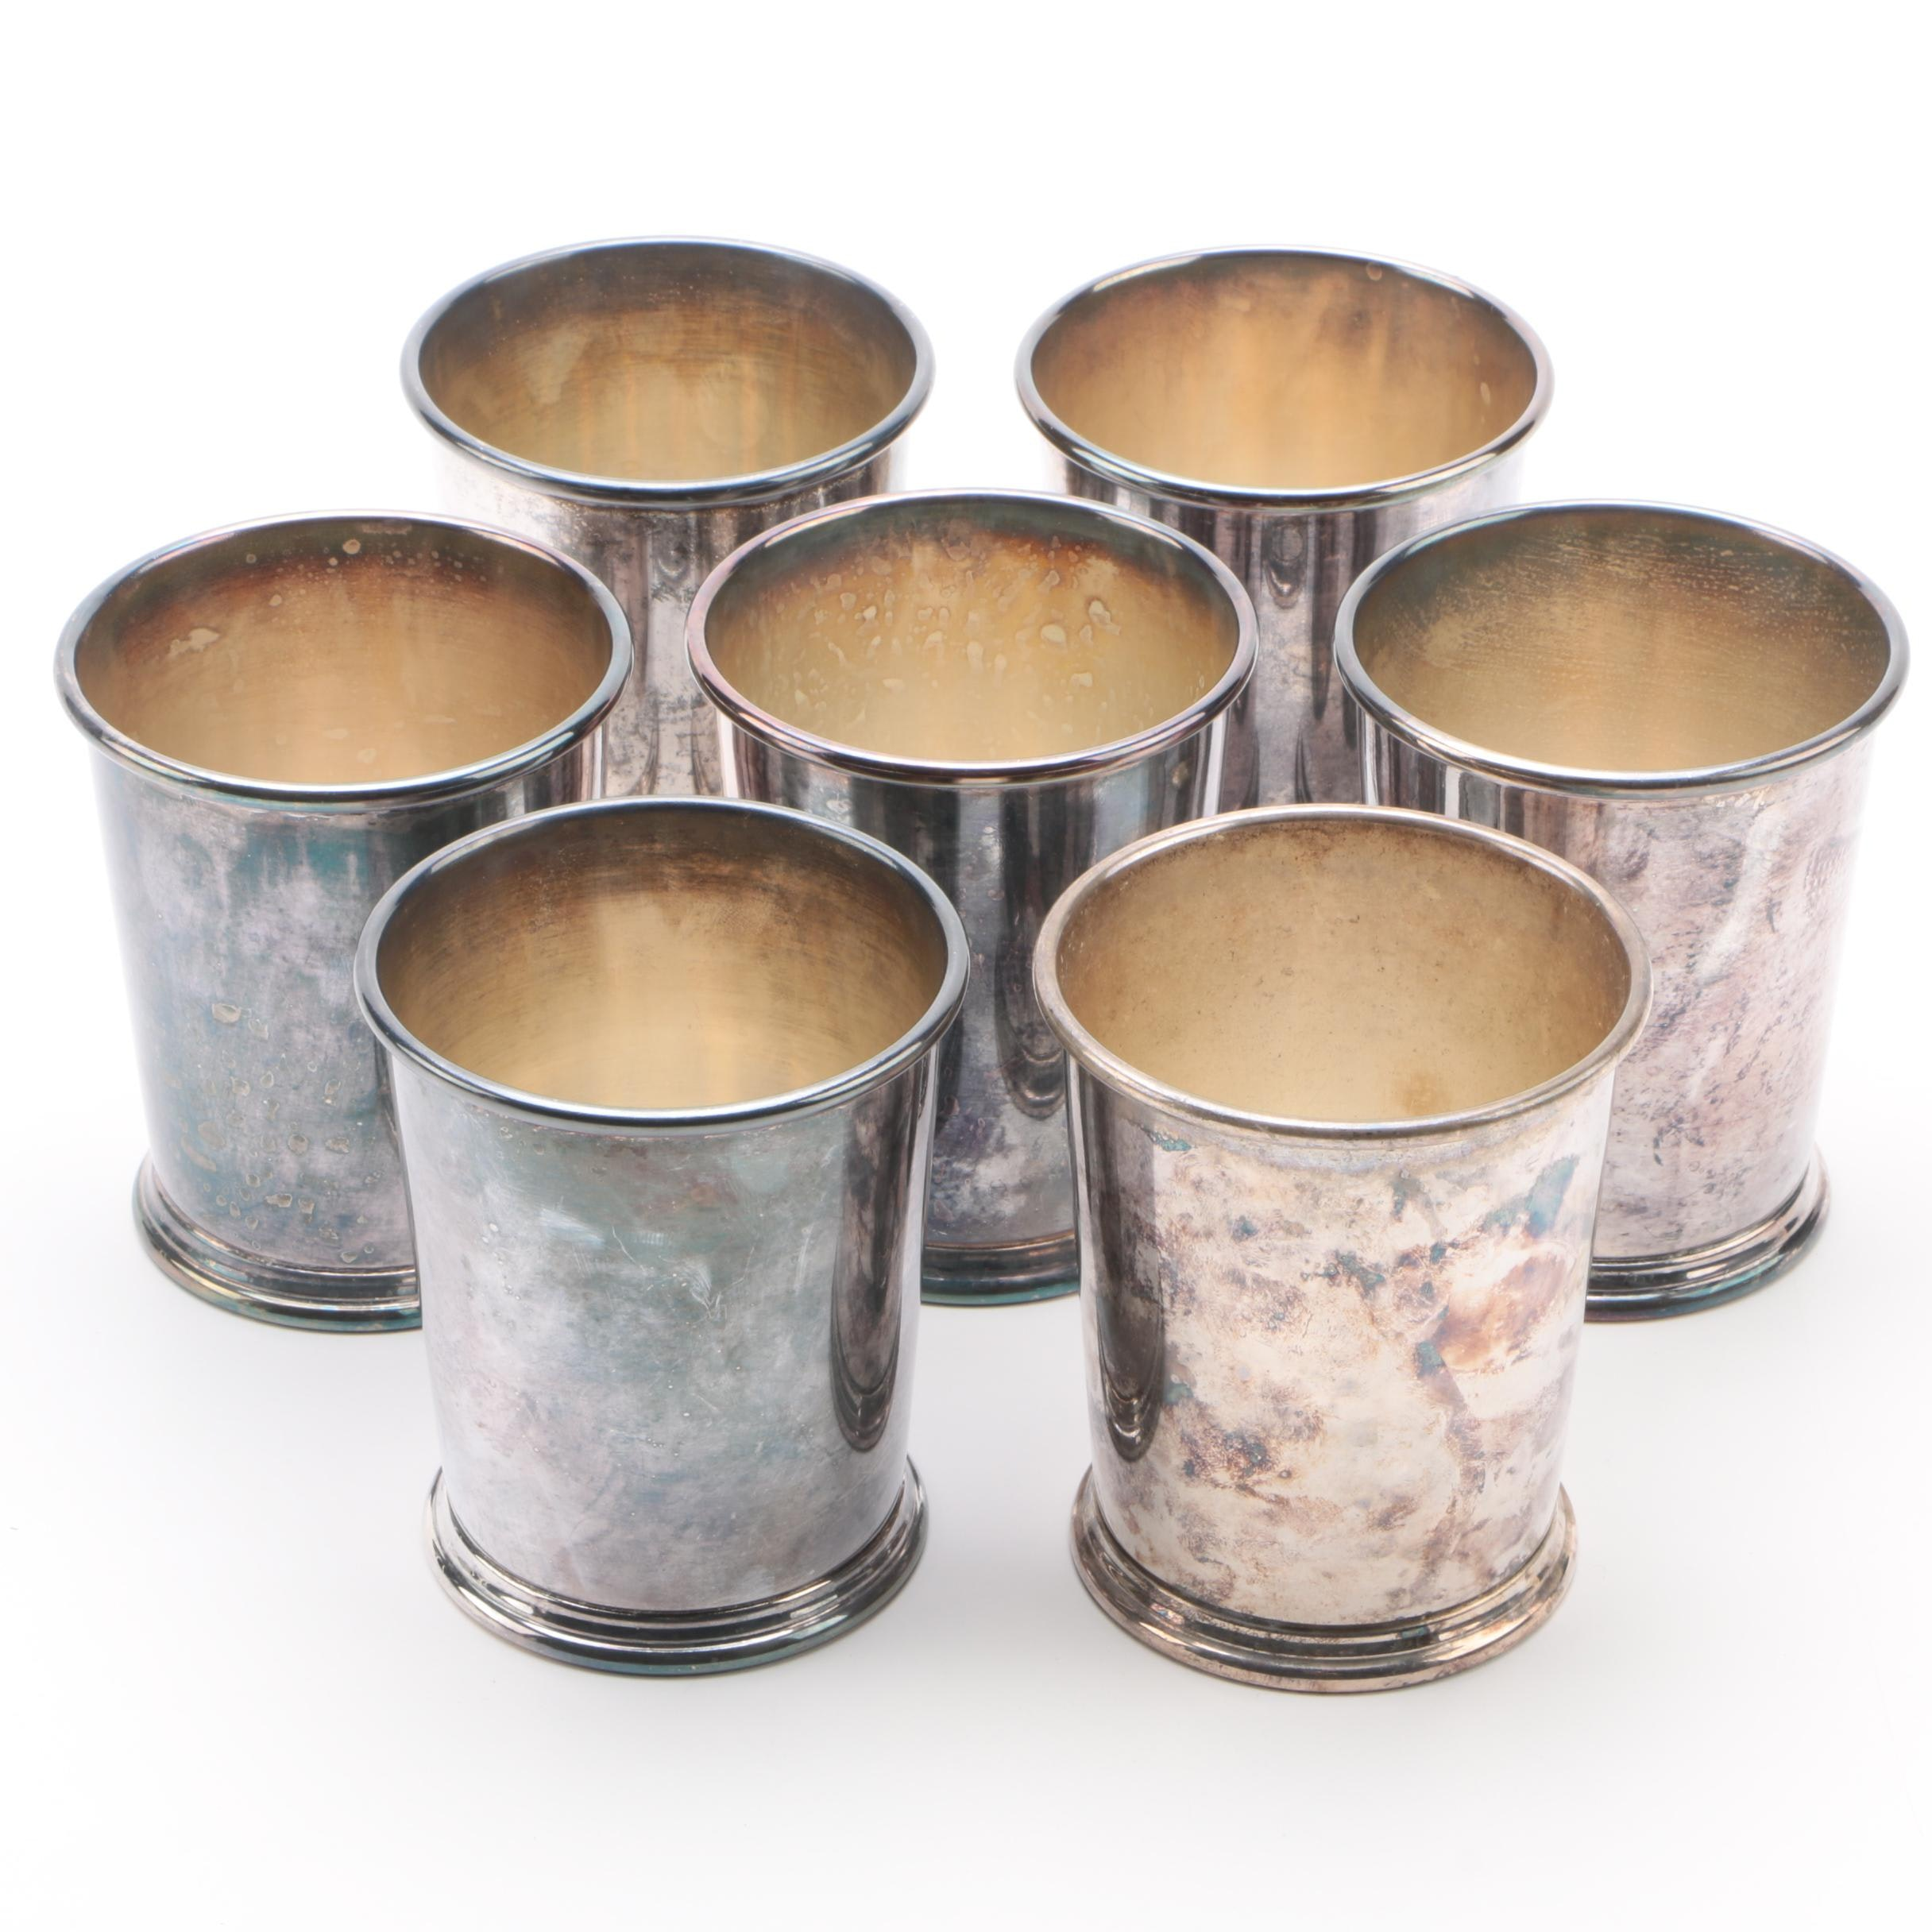 Art Silver Co. Silver-Plated Copper Julep Cups, Mid-Century